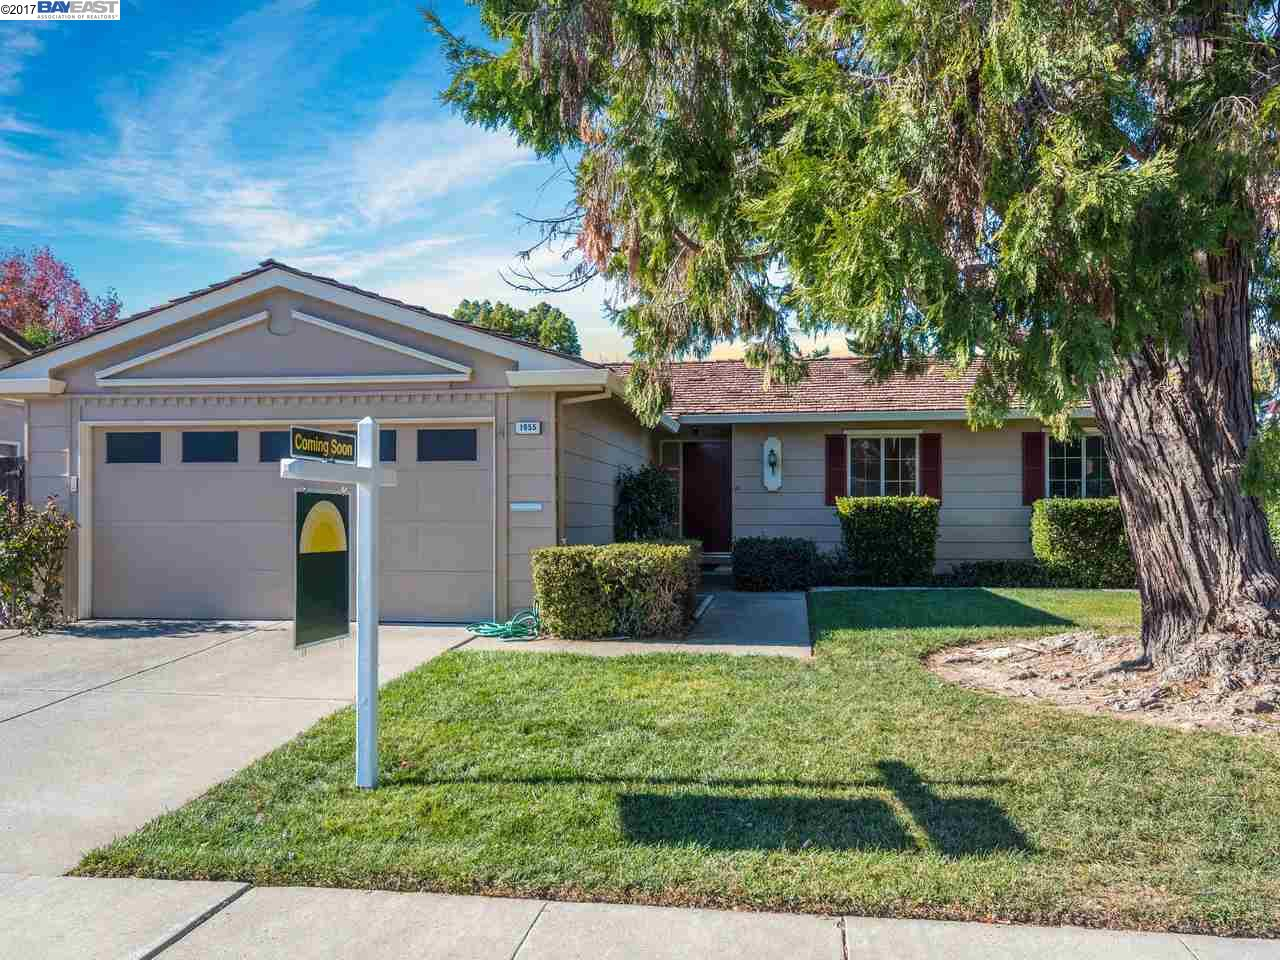 Single Family Home for Sale at 1955 Brooktree Way 1955 Brooktree Way Pleasanton, California 94566 United States